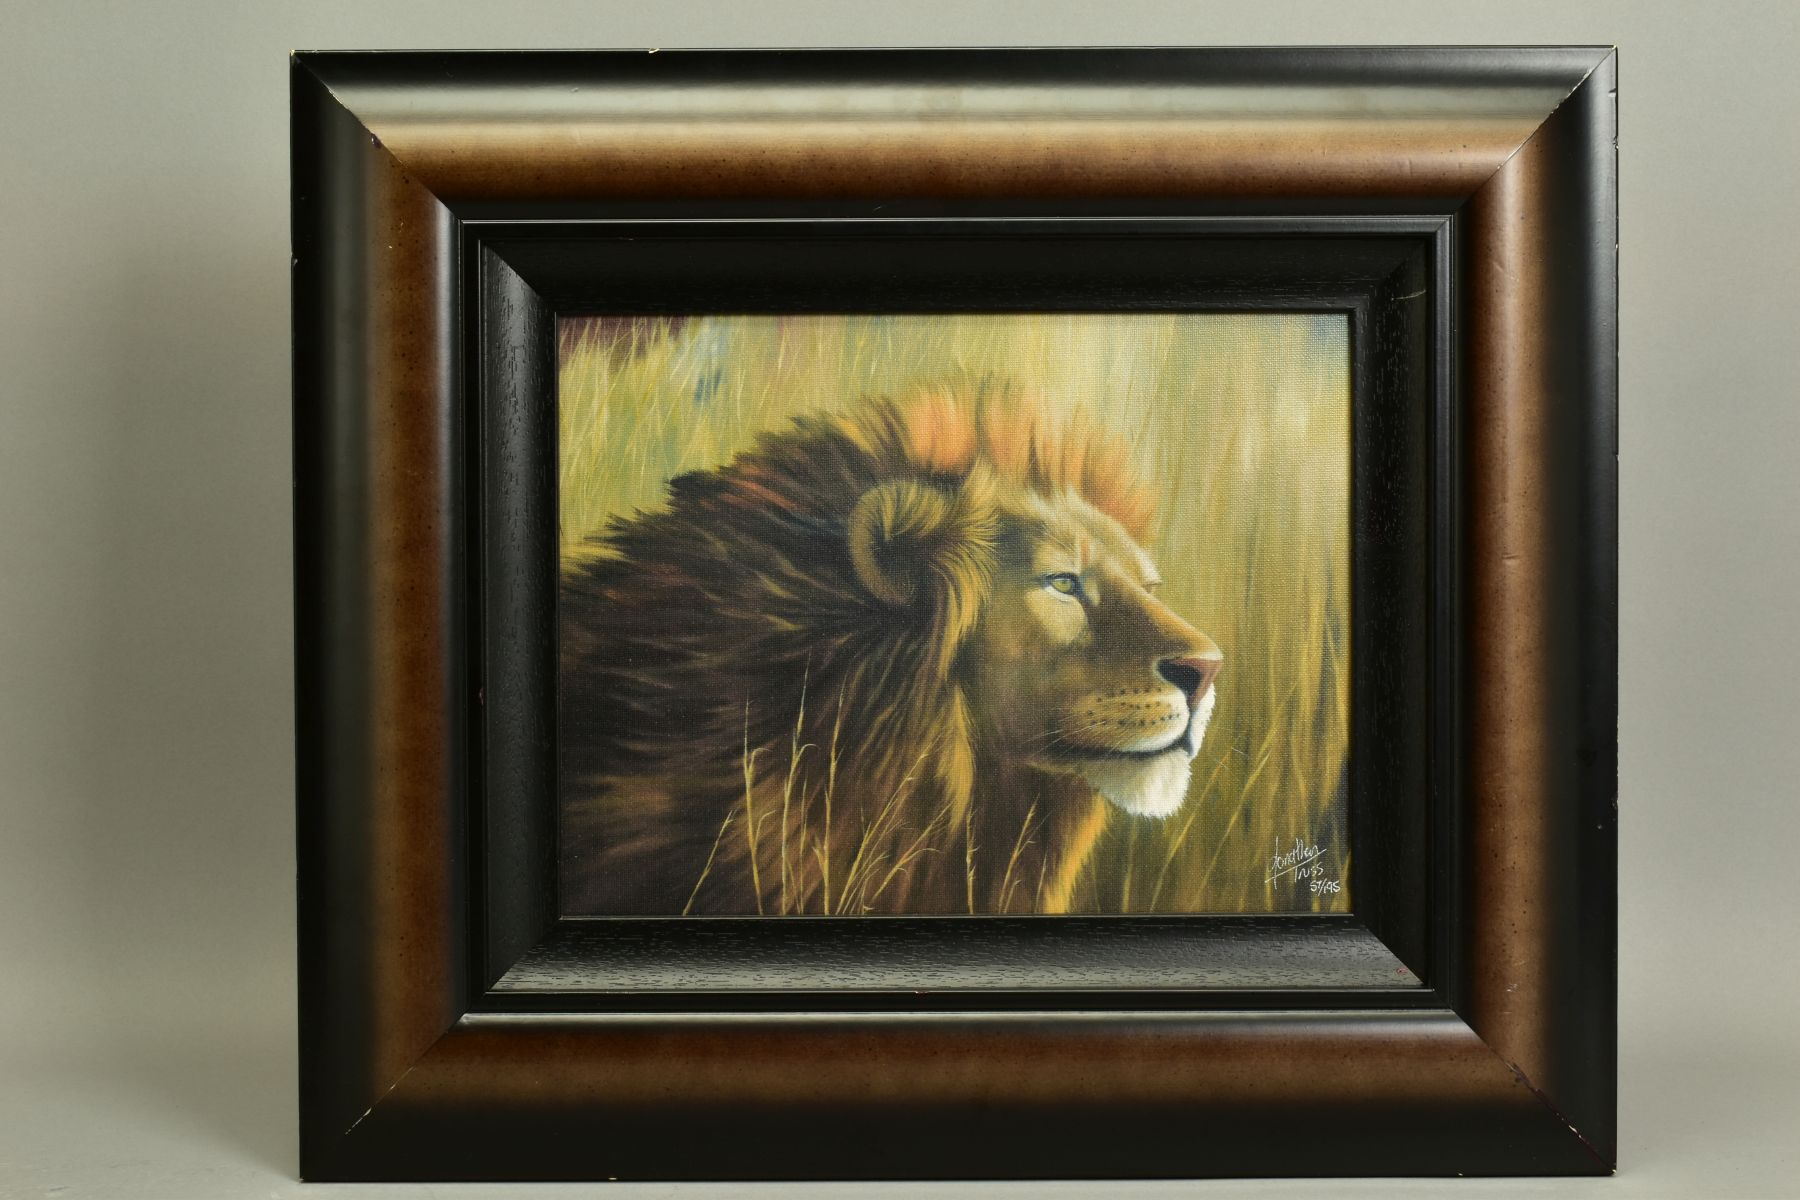 JONATHAN TRUSS (BRITISH 1960), 'Braveheart', a Limited Edition portrait of a Lion, signed bottom